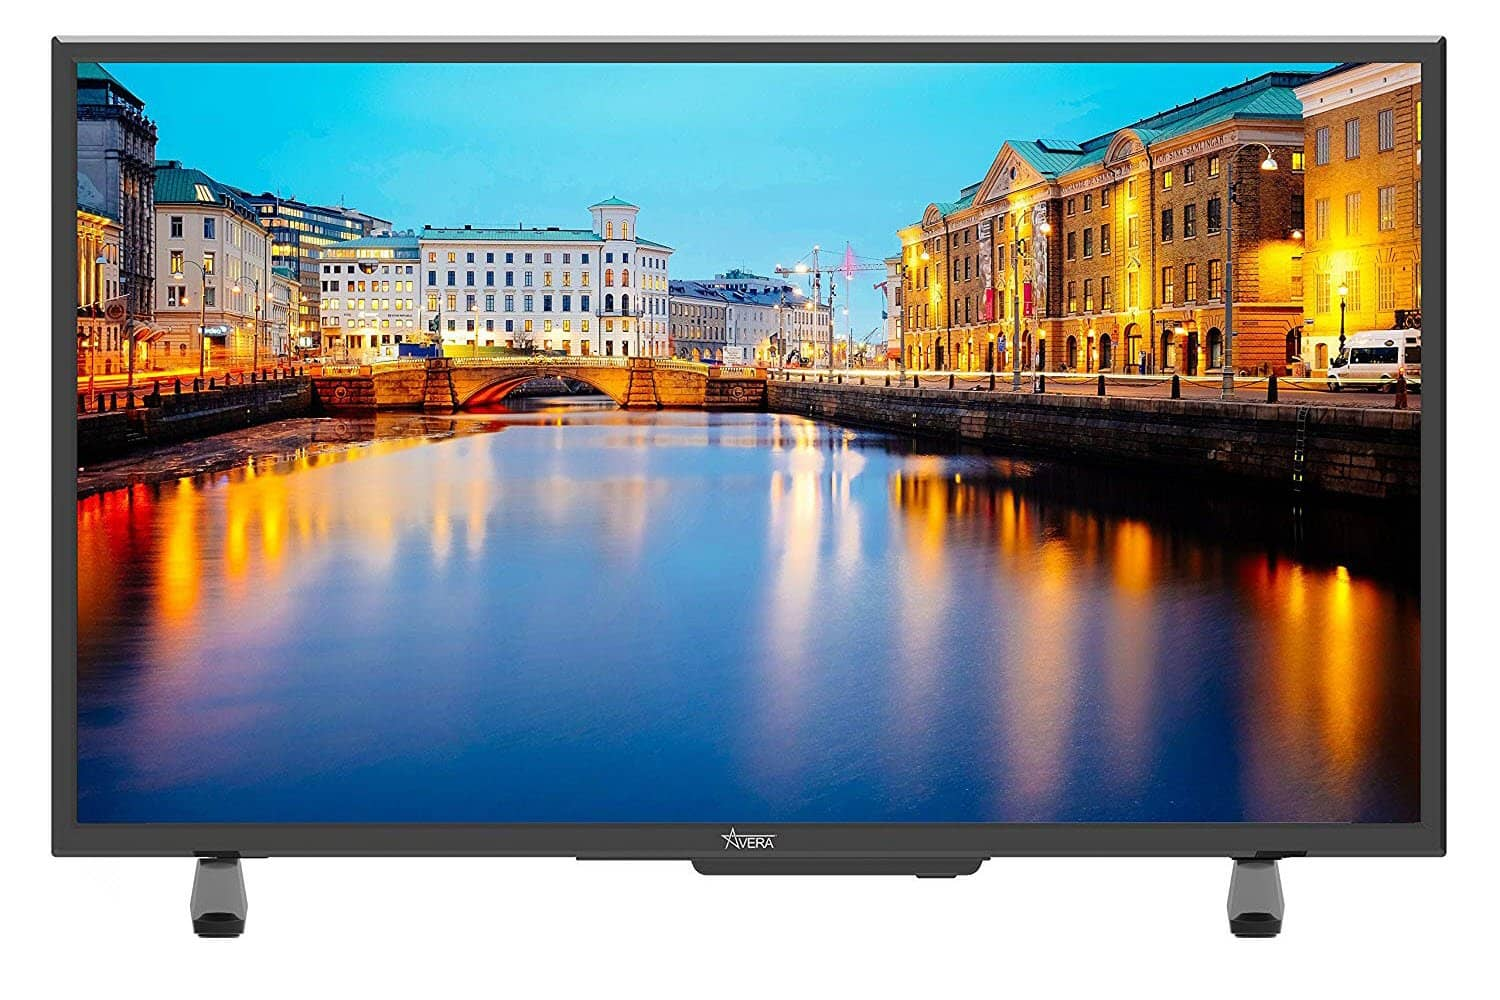 43 Inch Tv Avera 43aer20 43 Inch Full Hd 1080p Led Tv